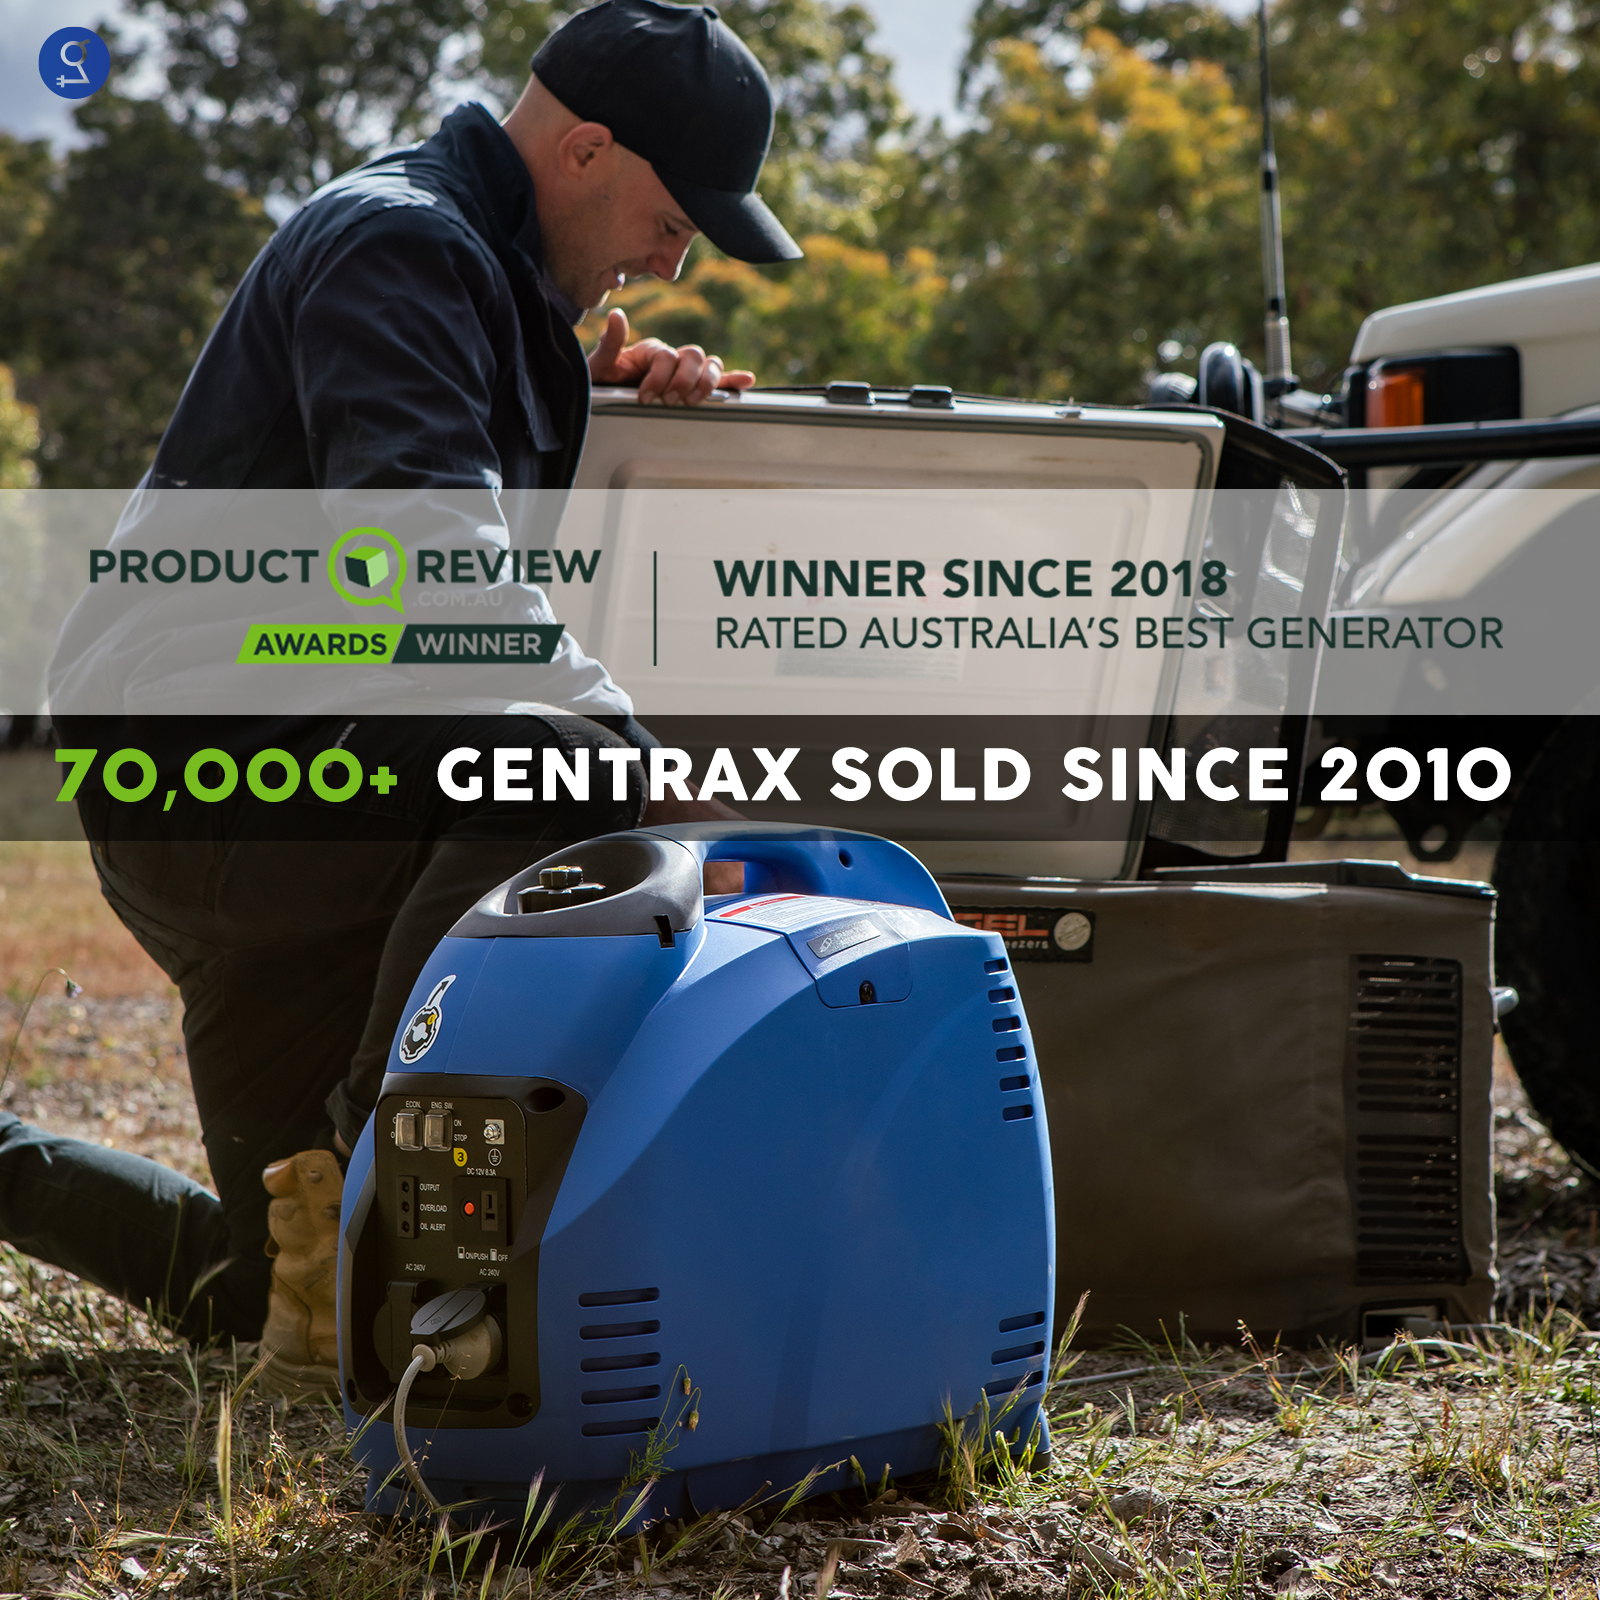 15-OFF-GenTrax-Inverter-Generator-3-5KW-Max-3KW-Rated-Pure-Sine-Portable-Petrol thumbnail 3